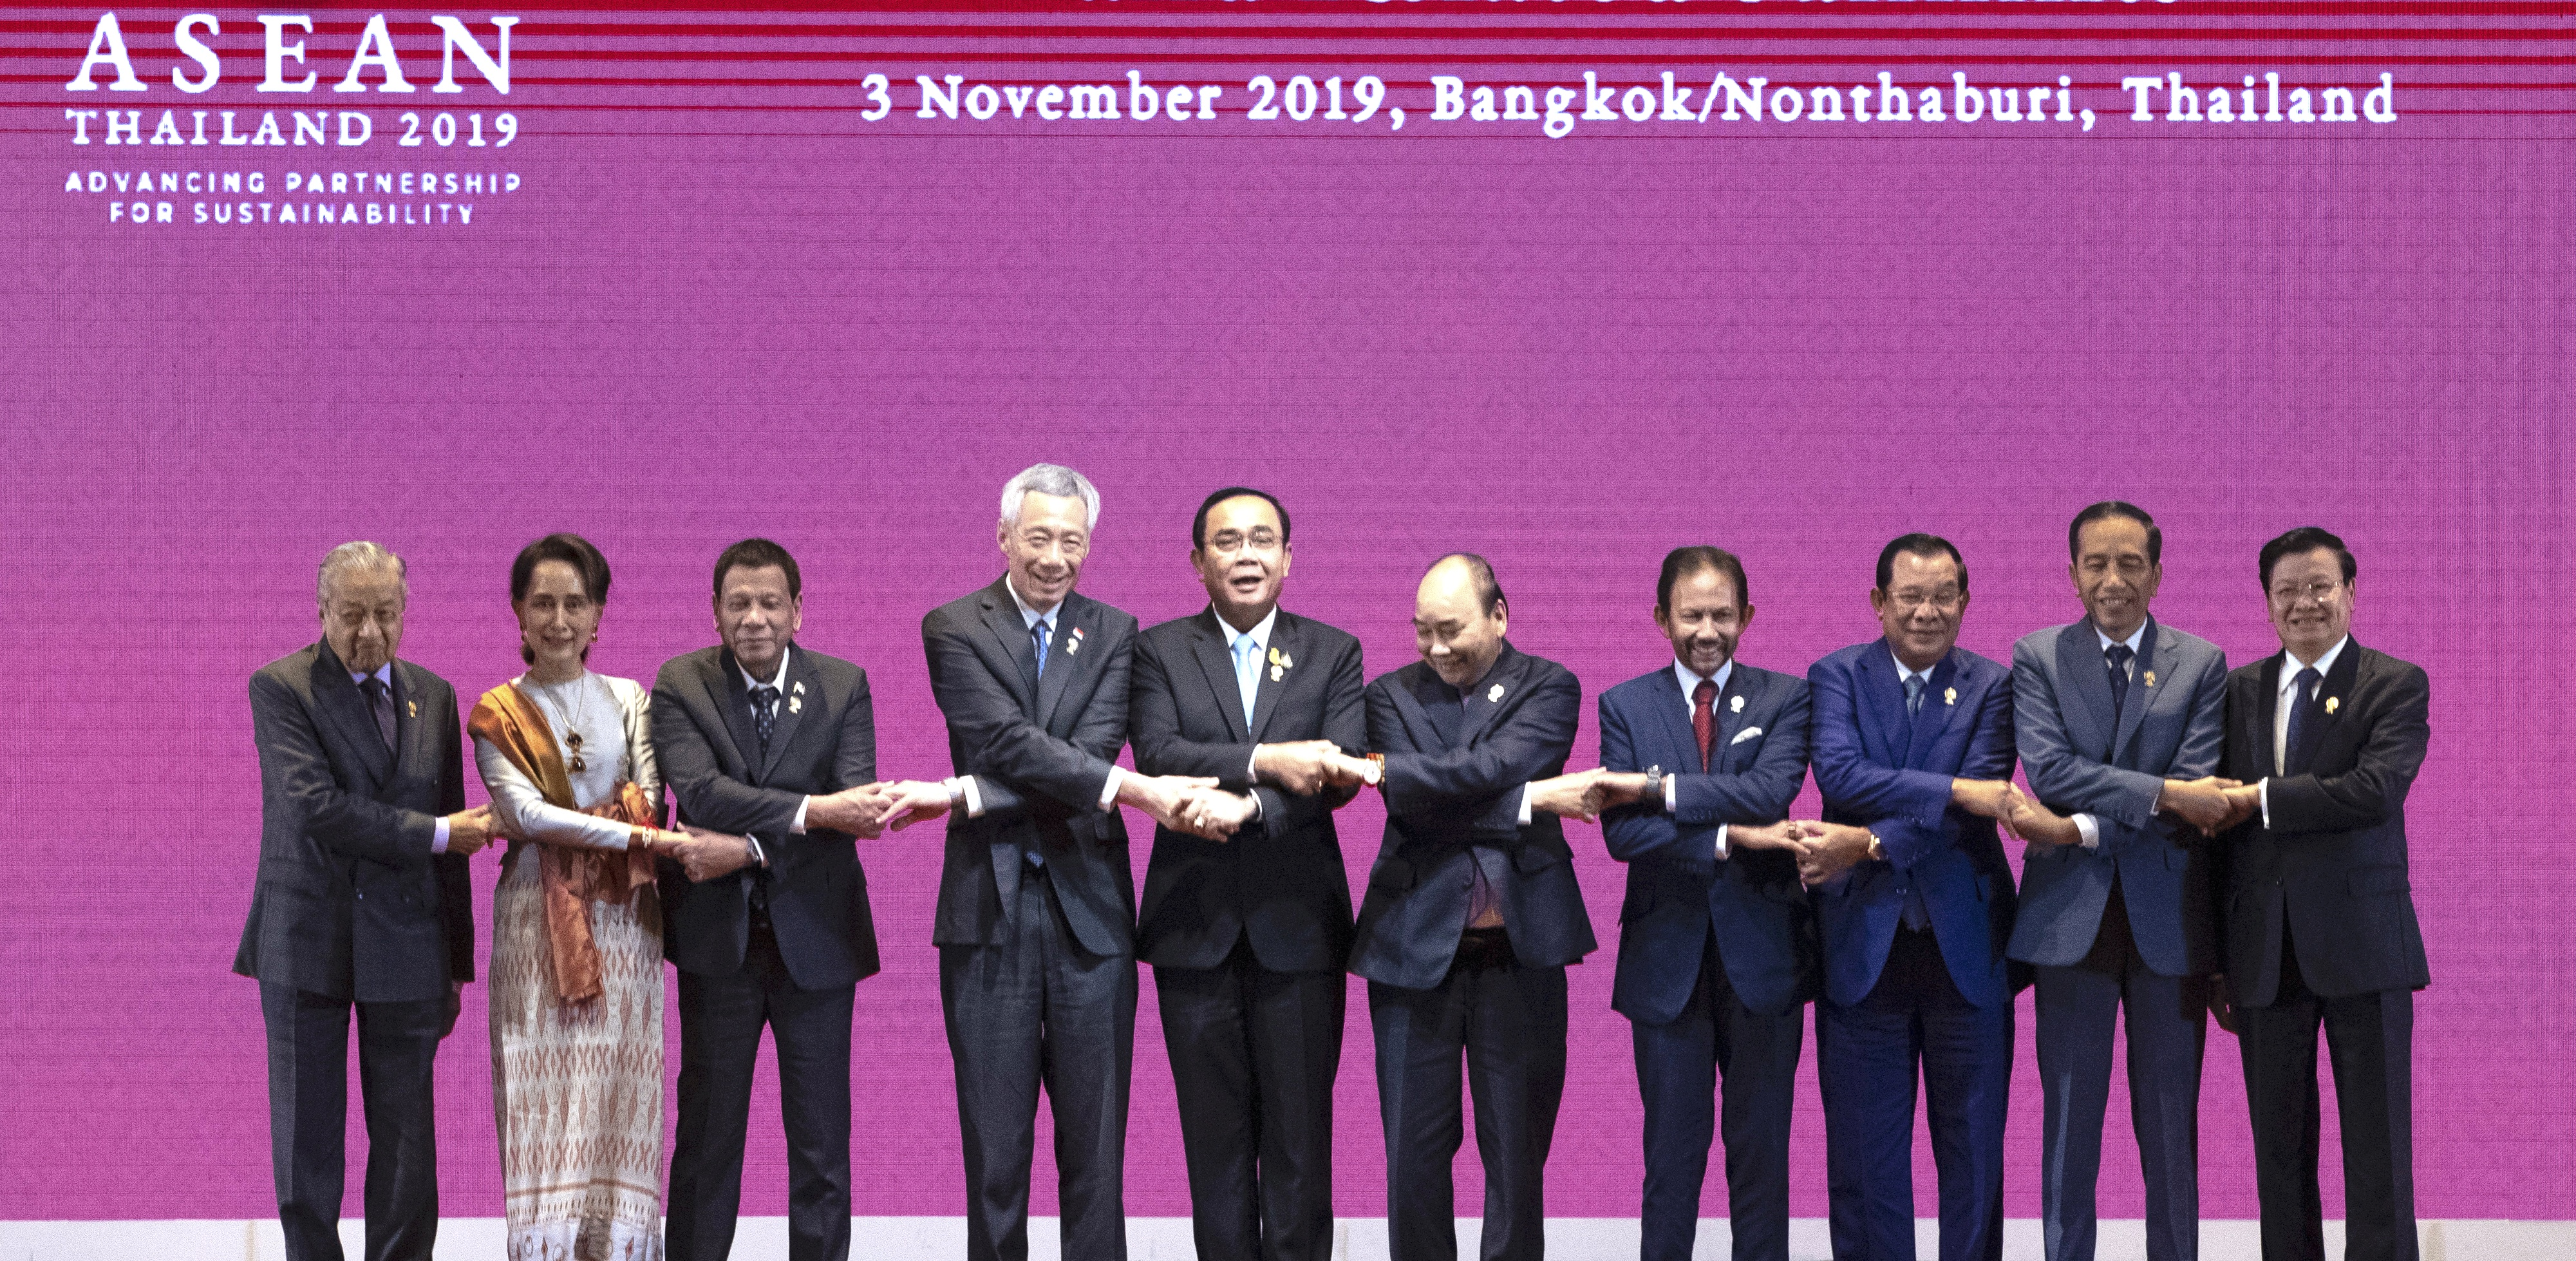 ASEAN leaders in 2019